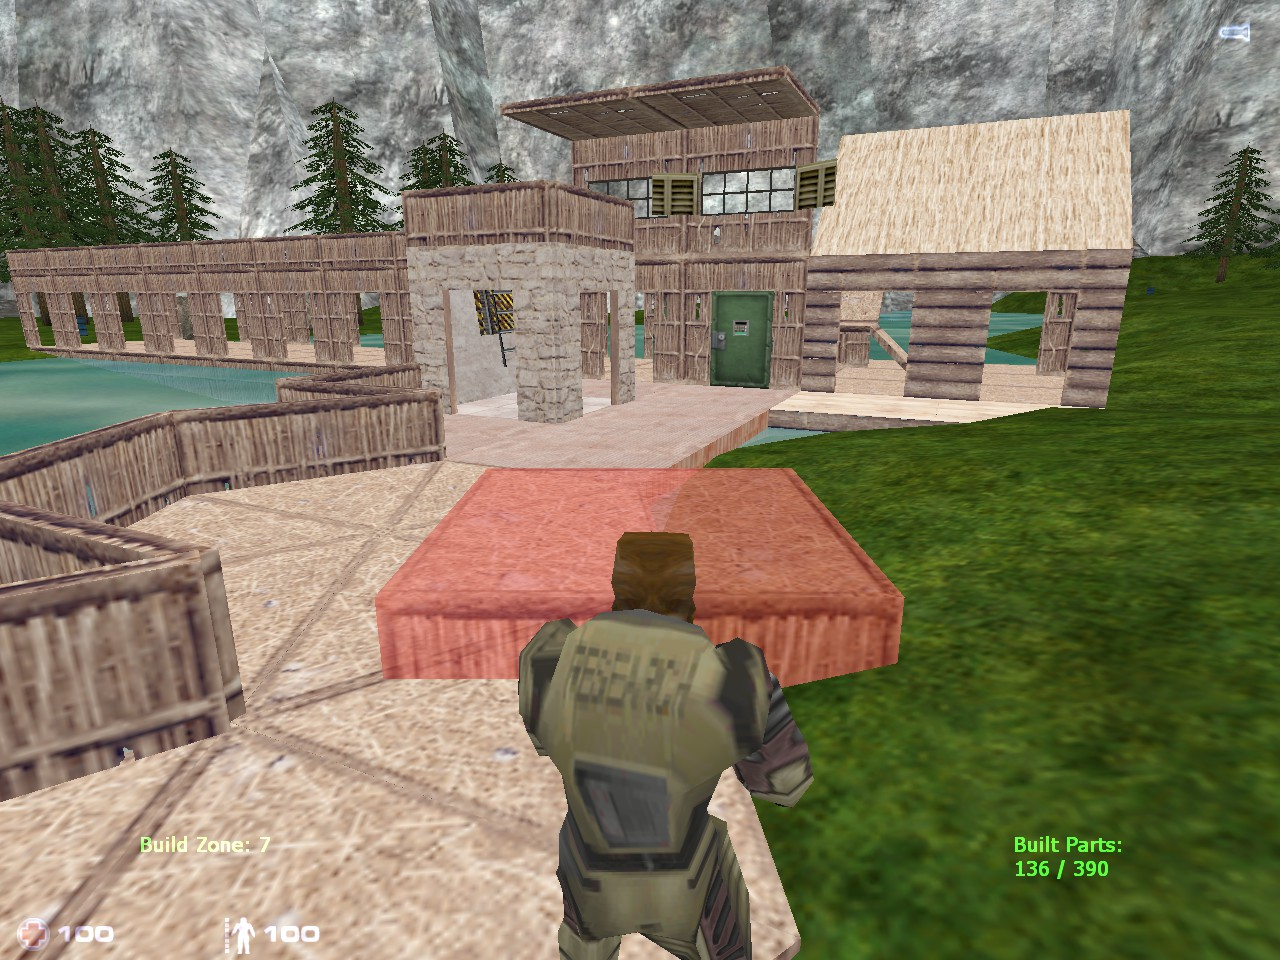 Rust - Sven Co-op Map Database Detailed Rust Map Game on rust legacy map, rust world map, soybean rust map, rust radar locations, rust part 1, rust map monuments, rust steam, west east south north map, rust map 2015, rust holes, rust resource map, rust map procedural, rust experimental map, rust map 2014, h1z1 map, rust map.net, rust map official, rust guns, mw3 rust map, rust marks map,